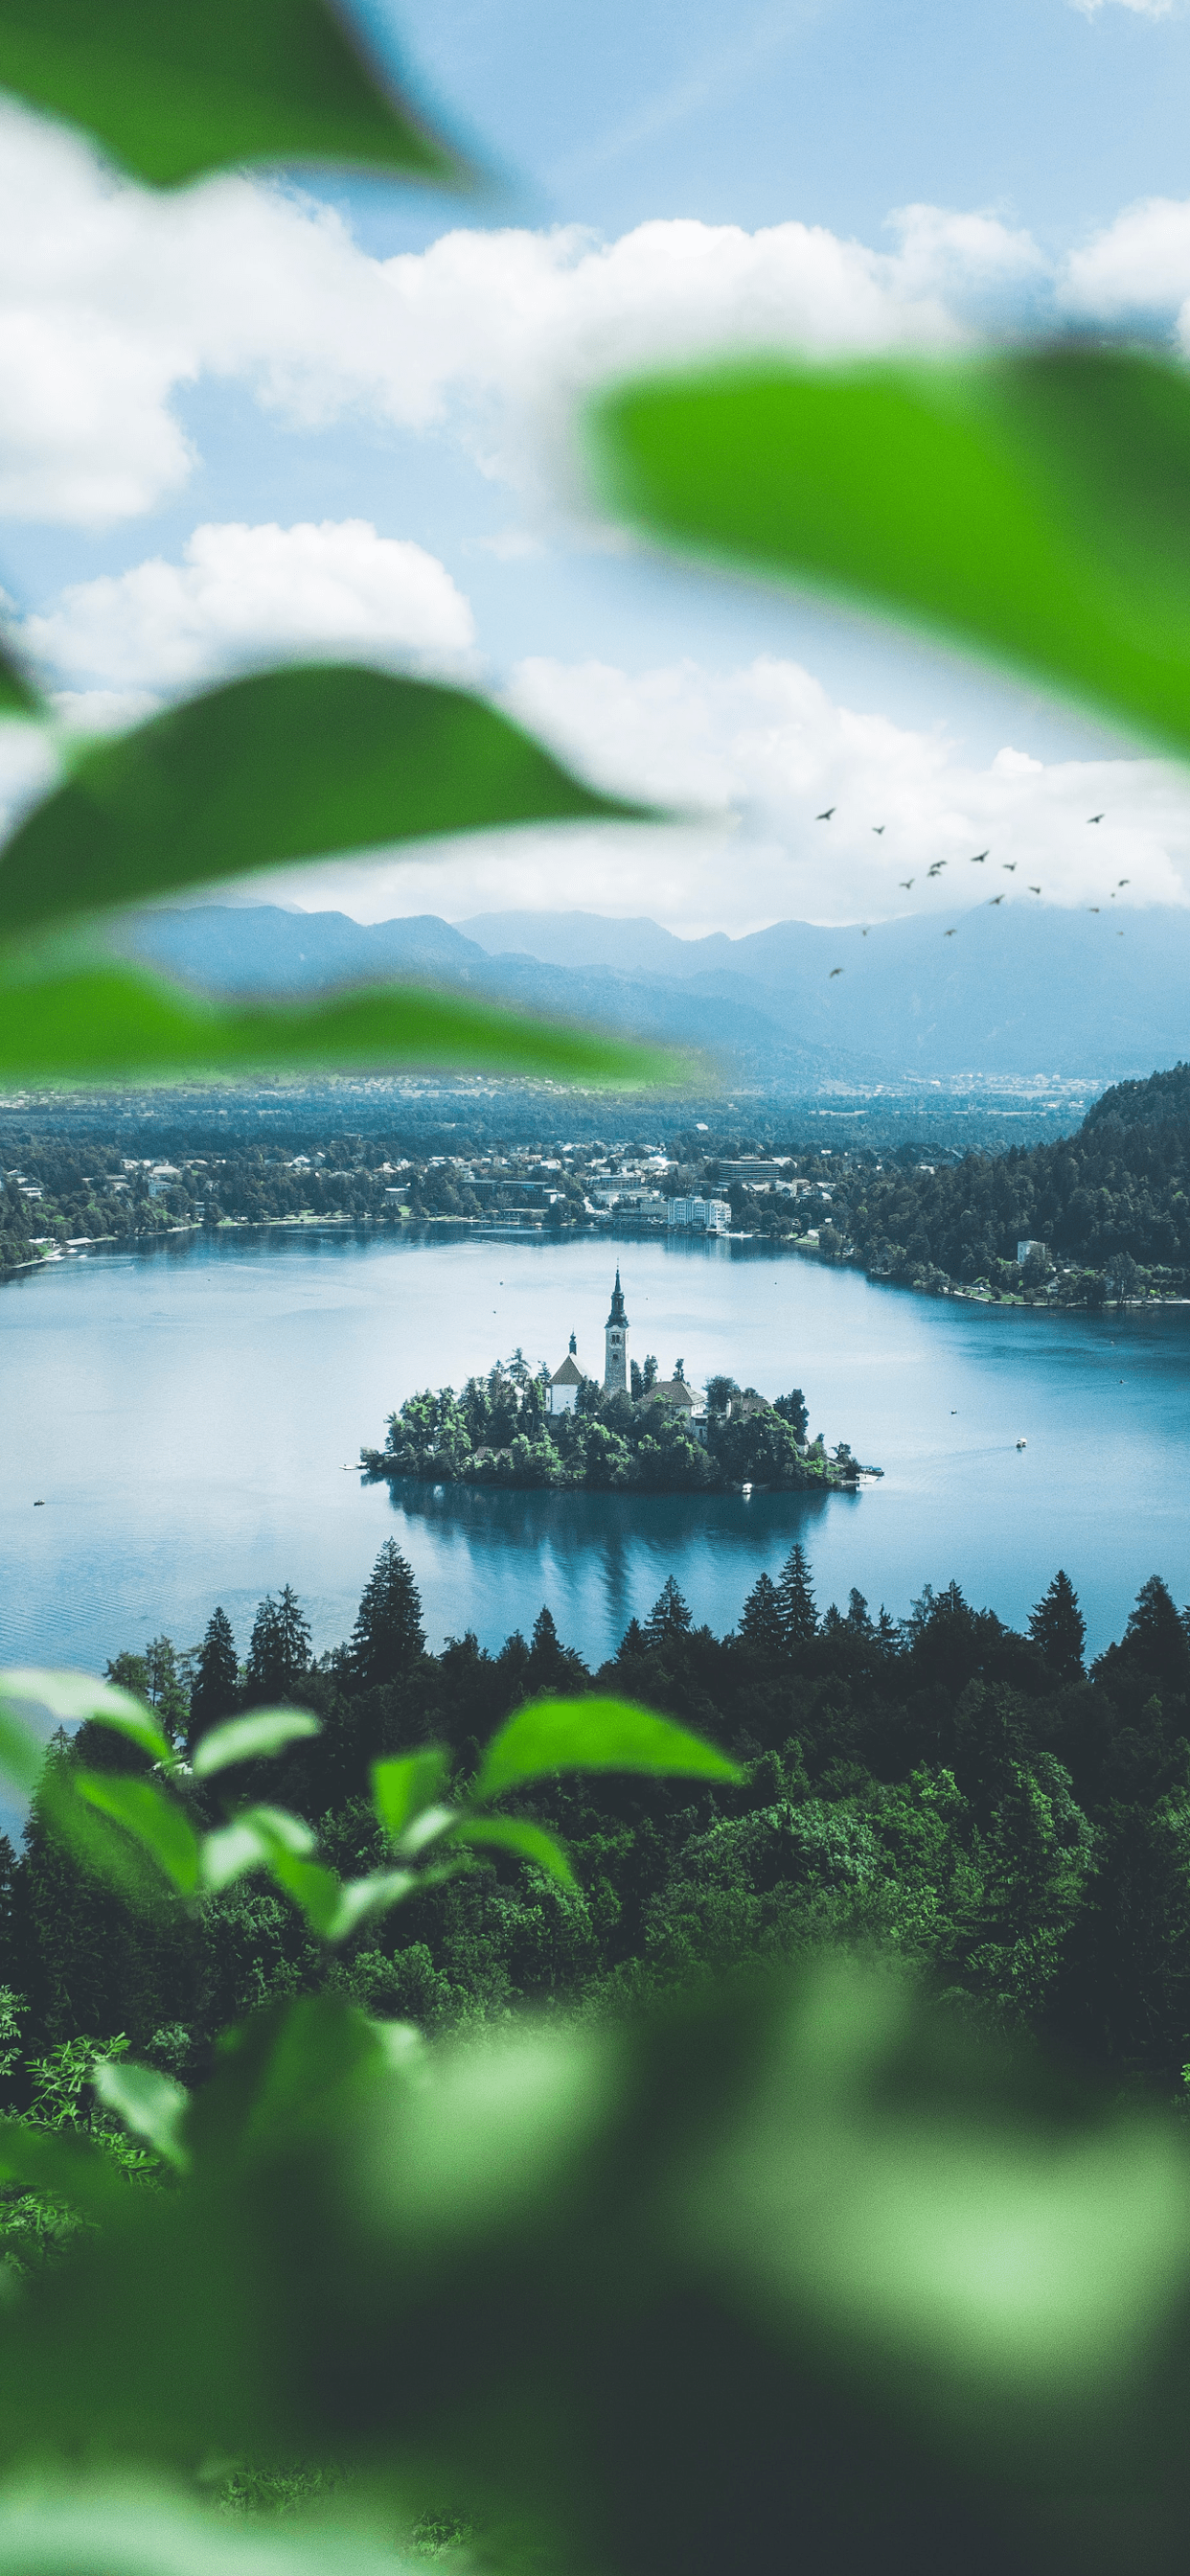 iPhone wallpapers lake bled slovenia Lake Bled